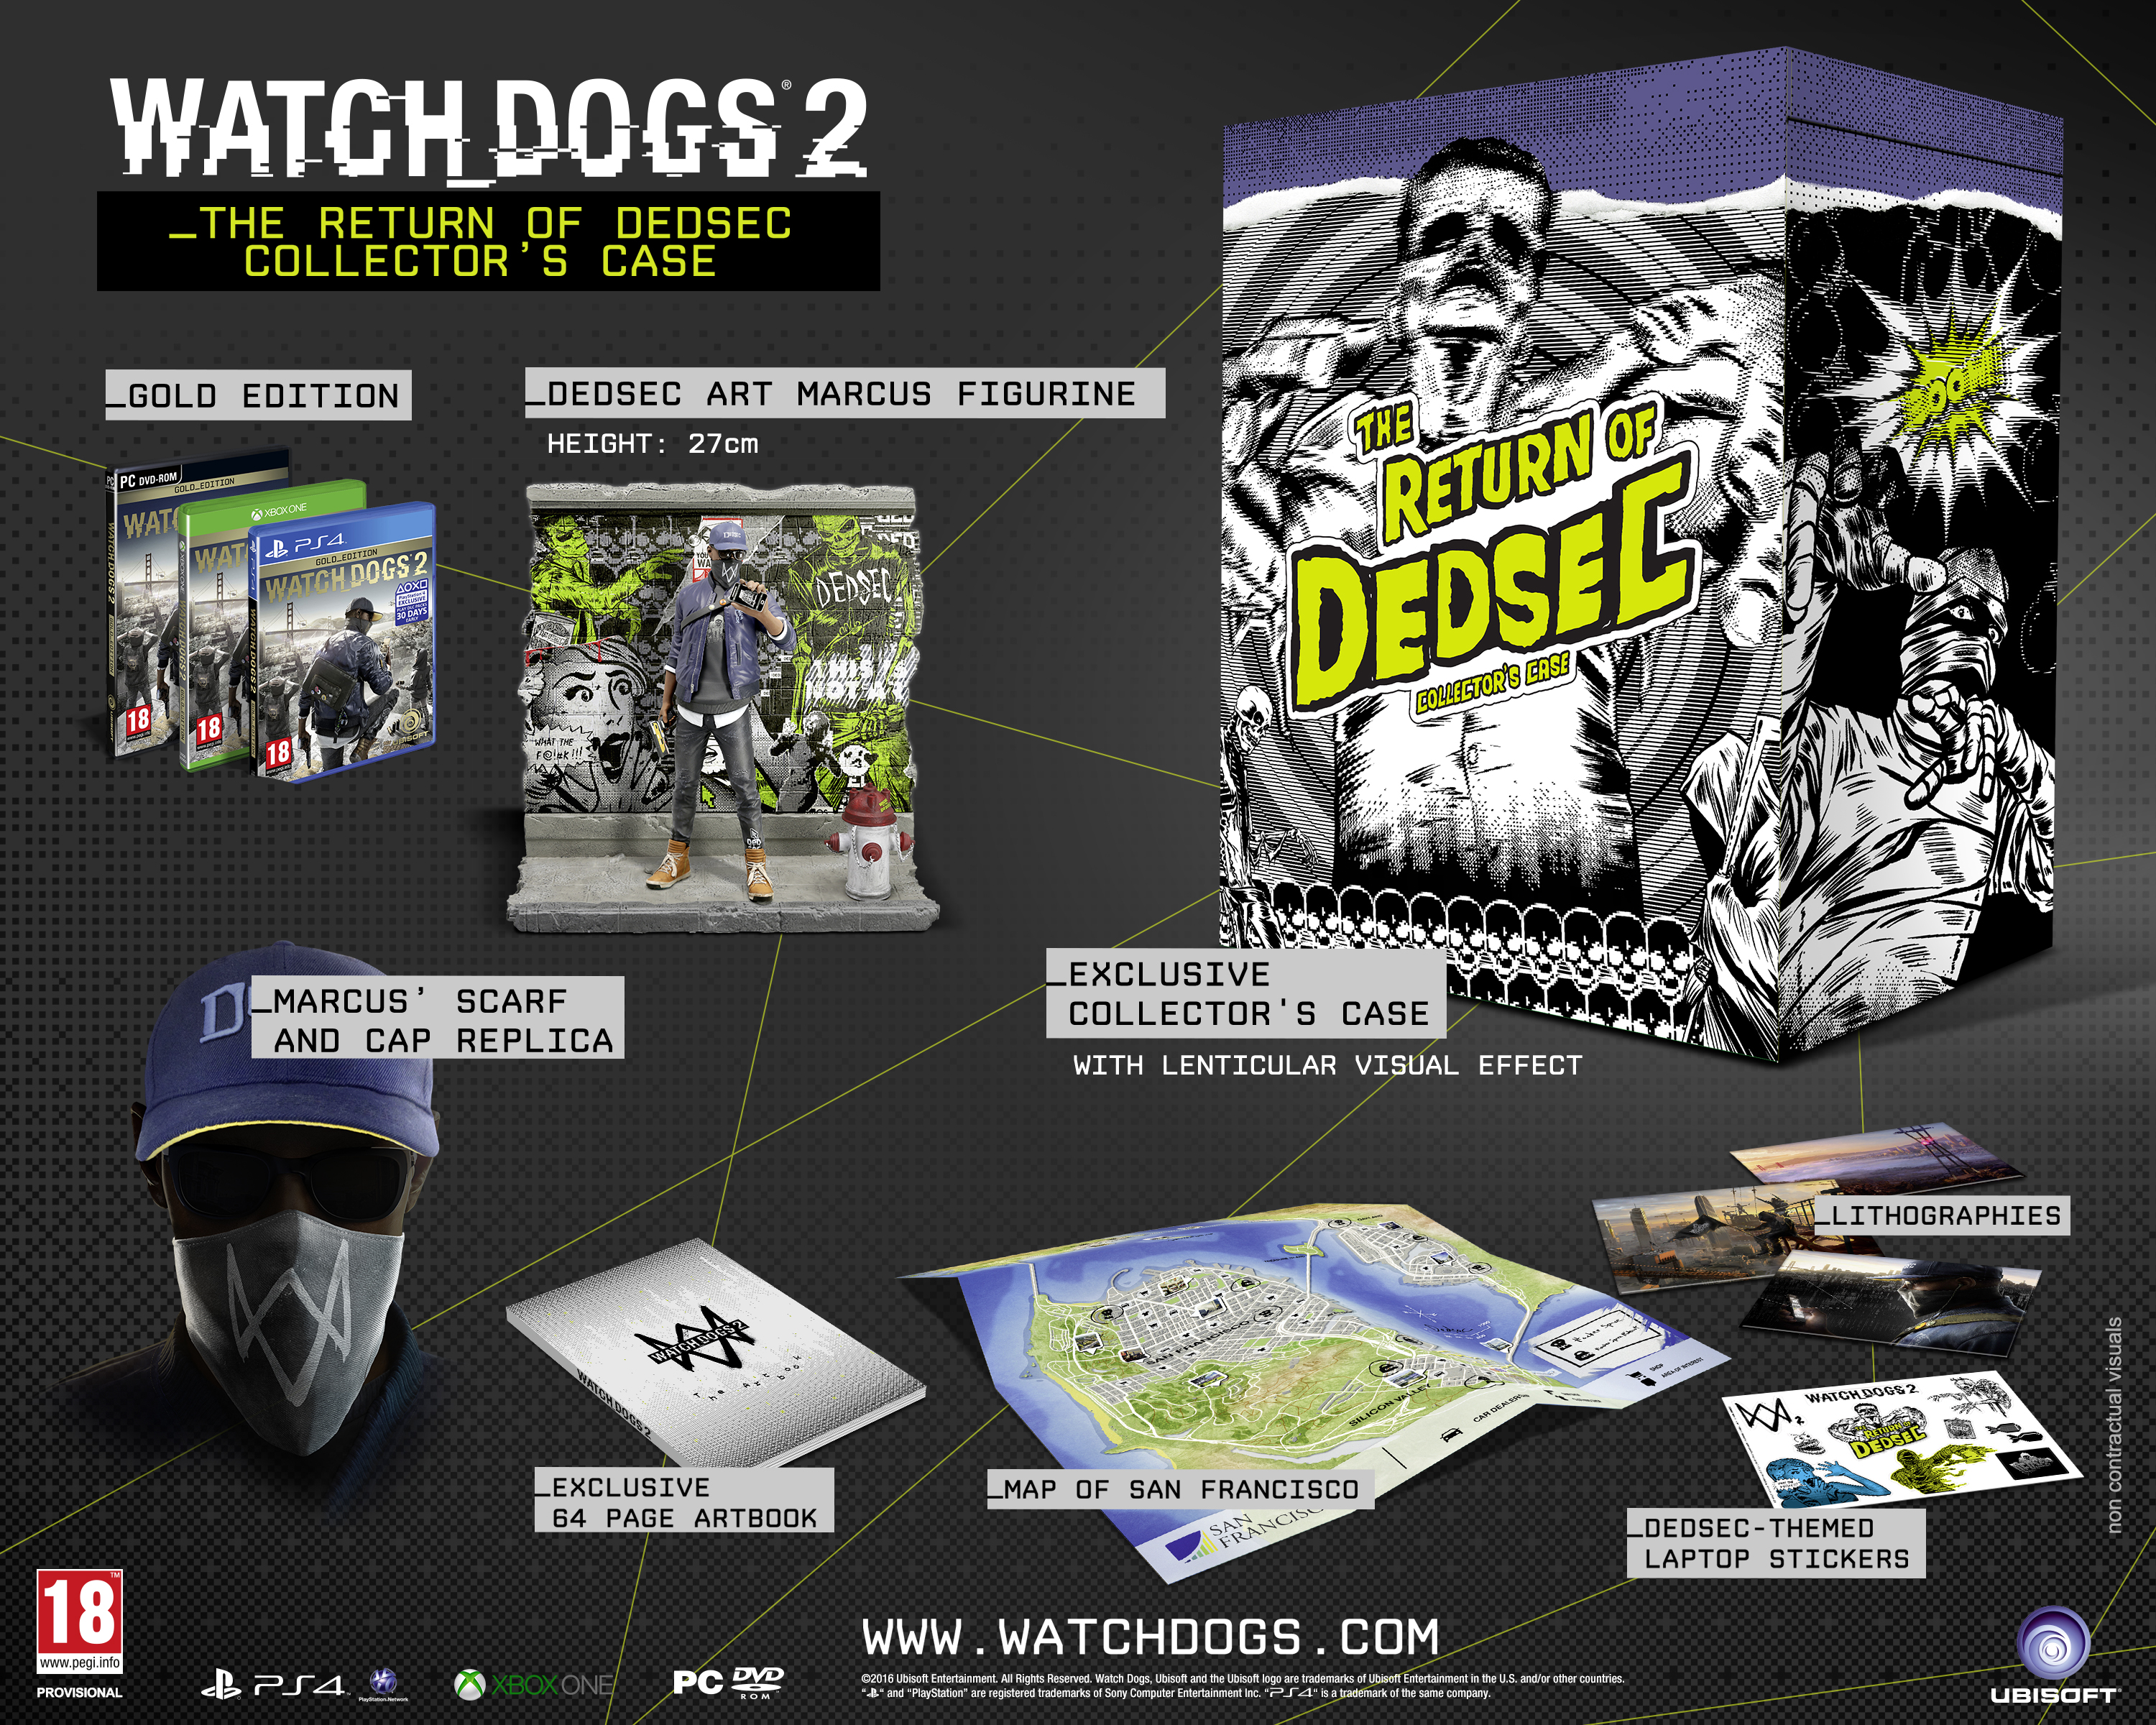 Watch Dogs 2 - The Return Of Dedsec COLLECTOR'S CASE Thumbnail